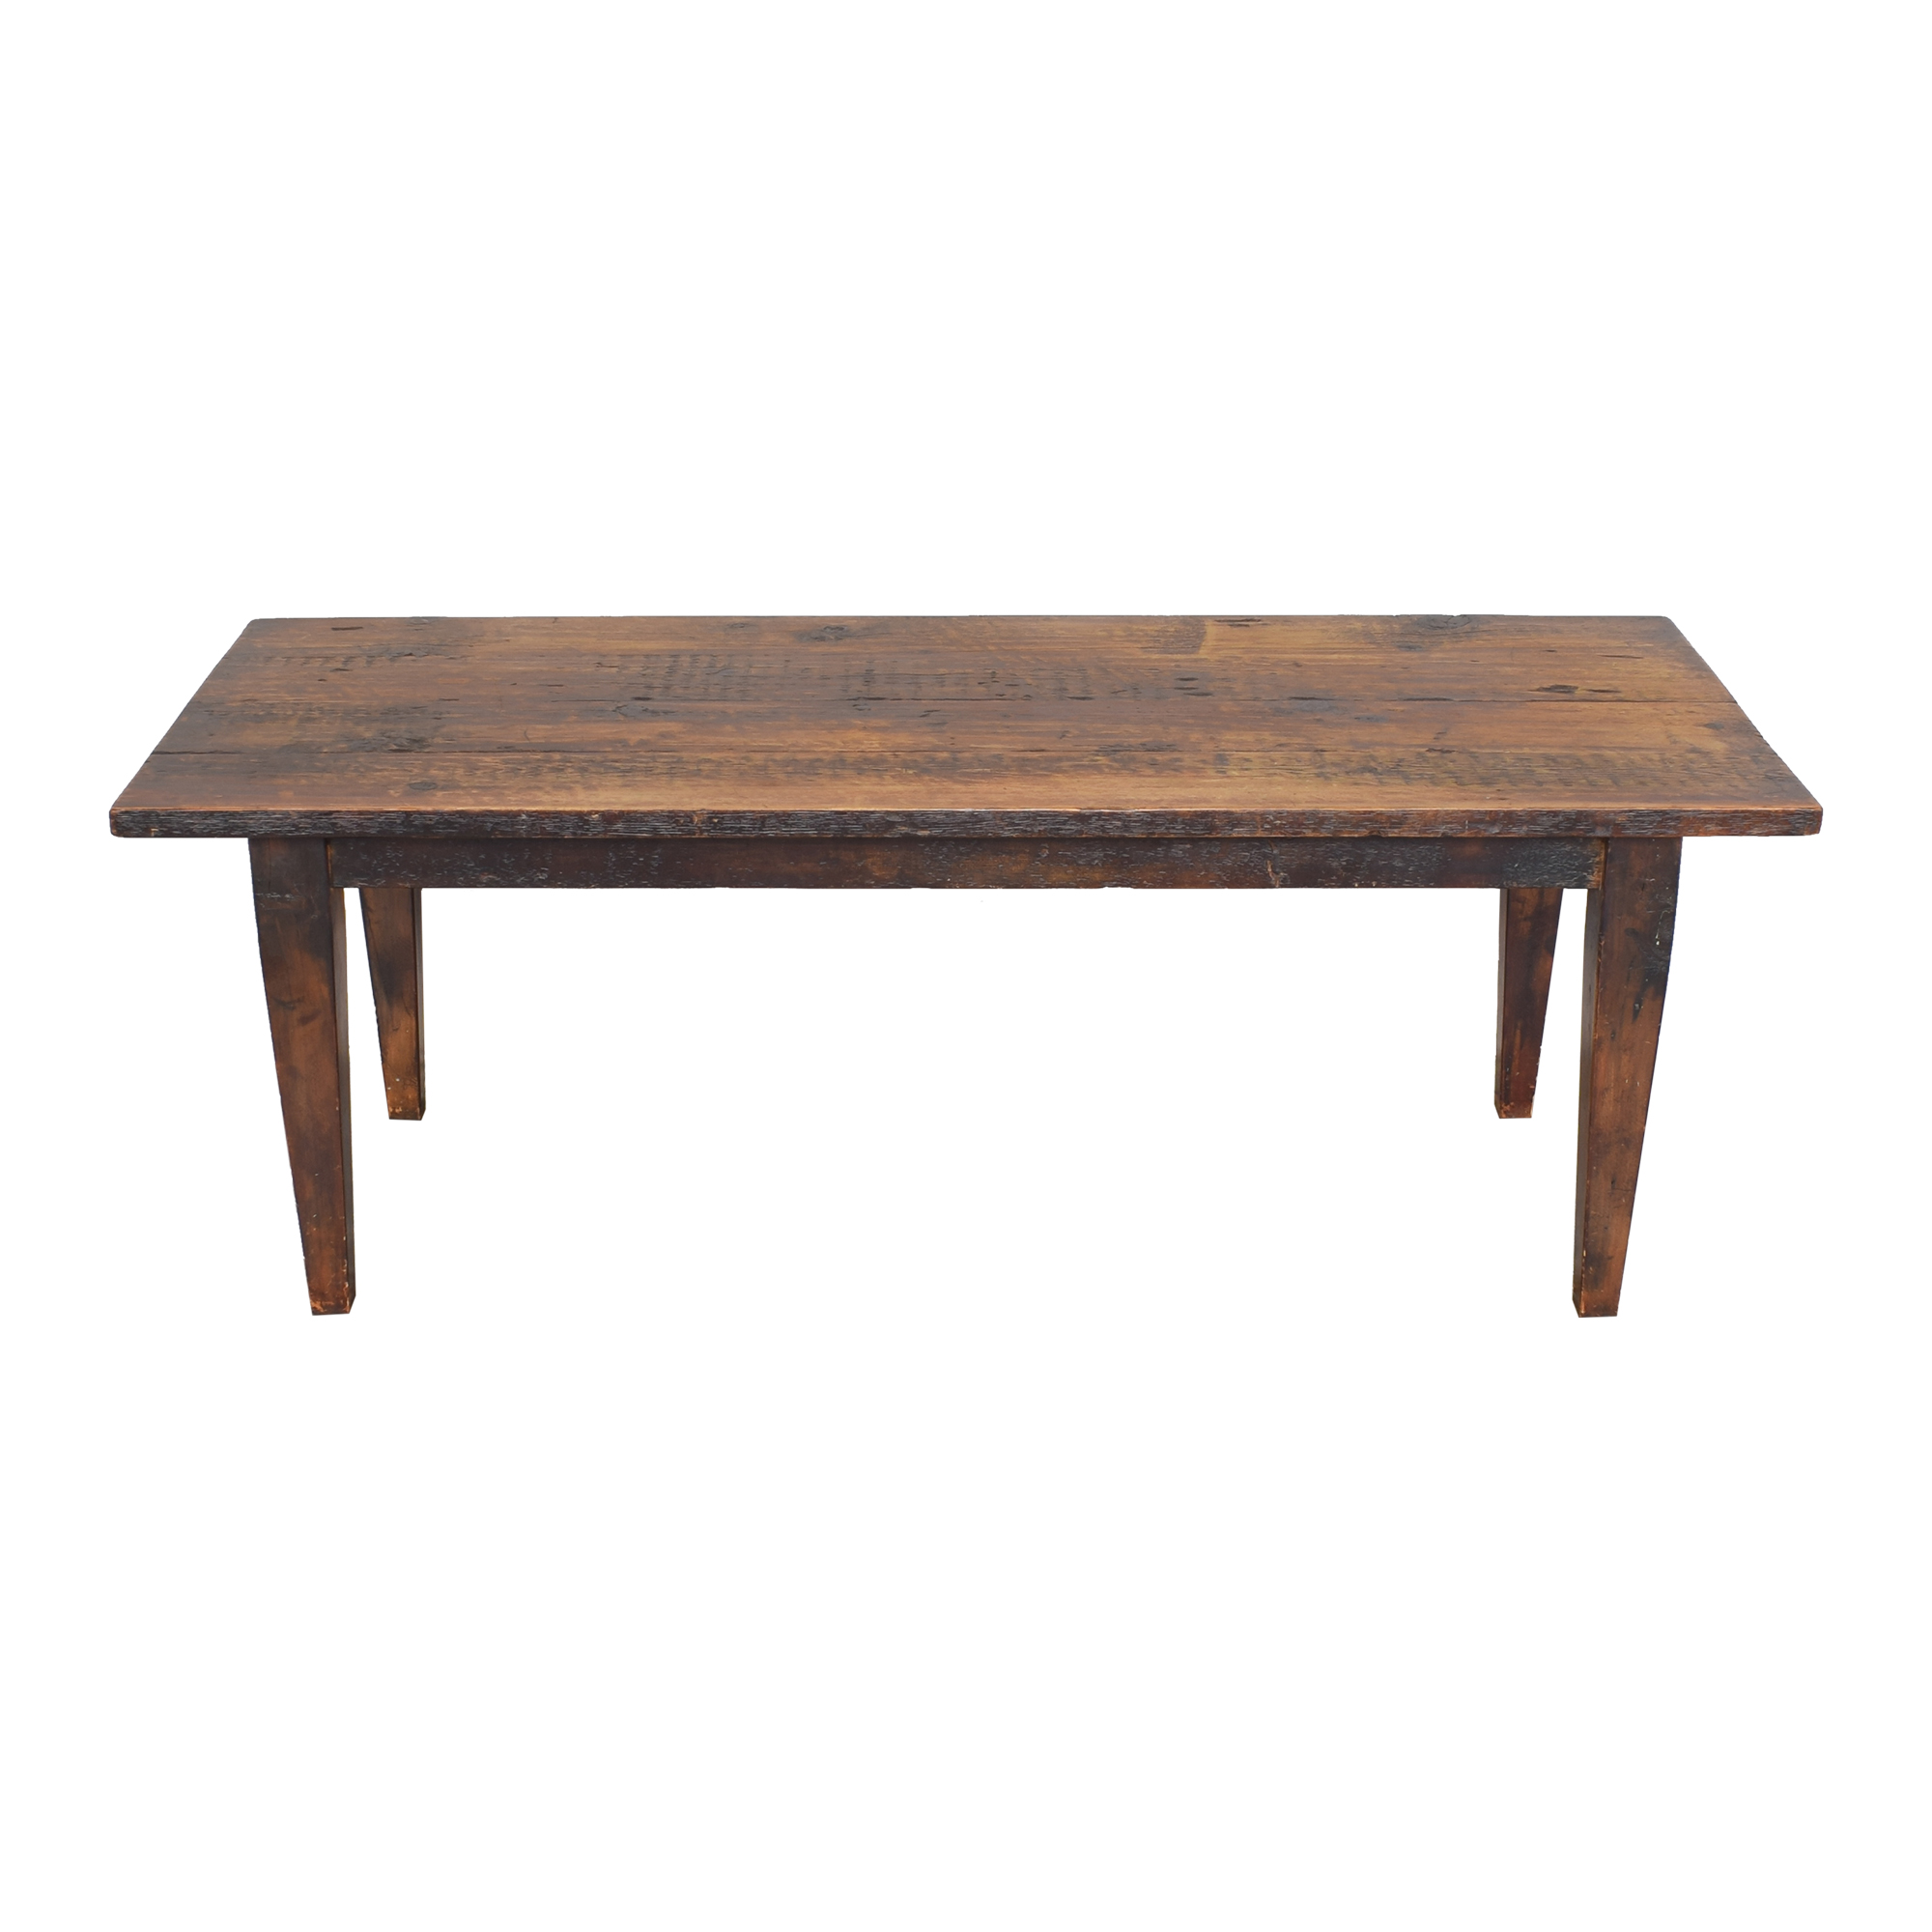 shop Olde Good Things Olde Good Things Reclaimed Farmhouse Dining Table online